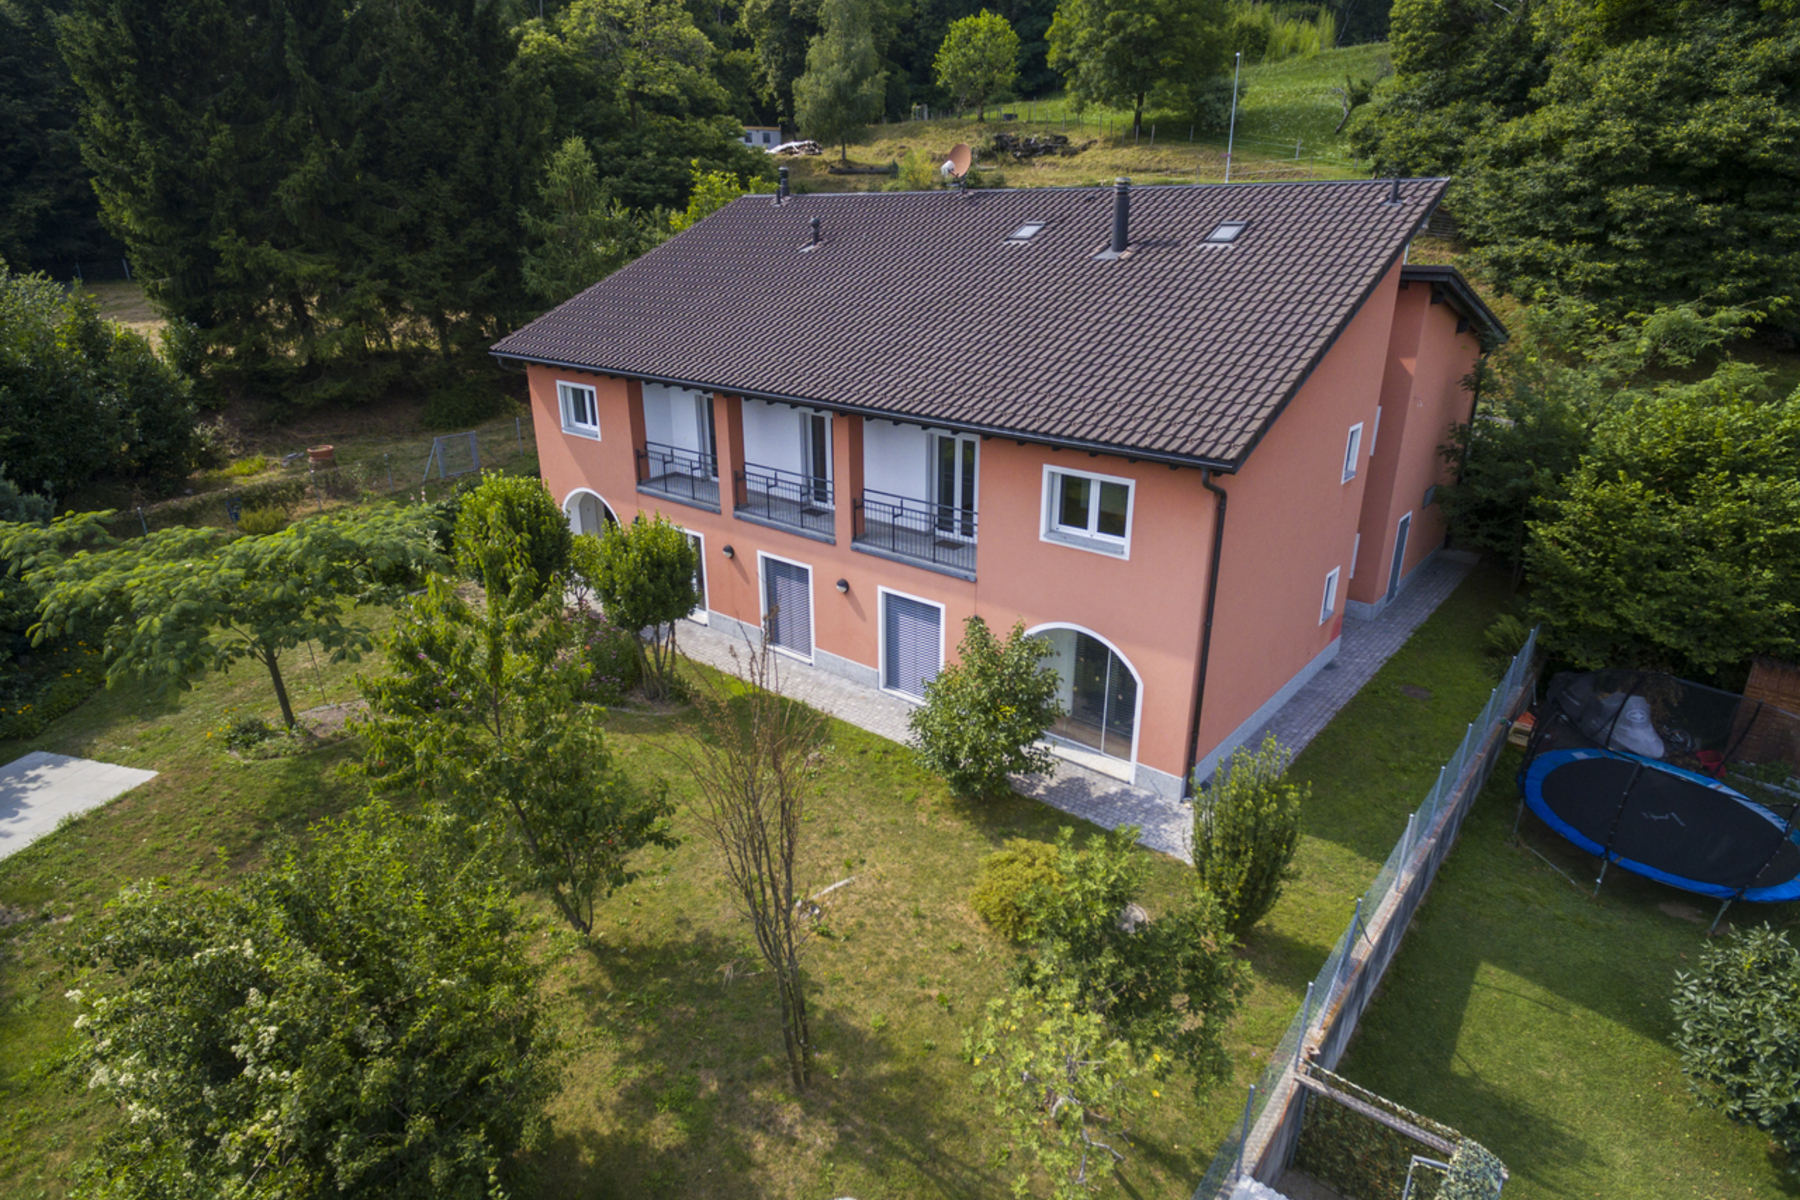 Single Family Home for Sale at For sale, Villa, 6986 Miglieglia, Rif. 1439569 Other Switzerland, Other Areas In Switzerland, 6986 Switzerland